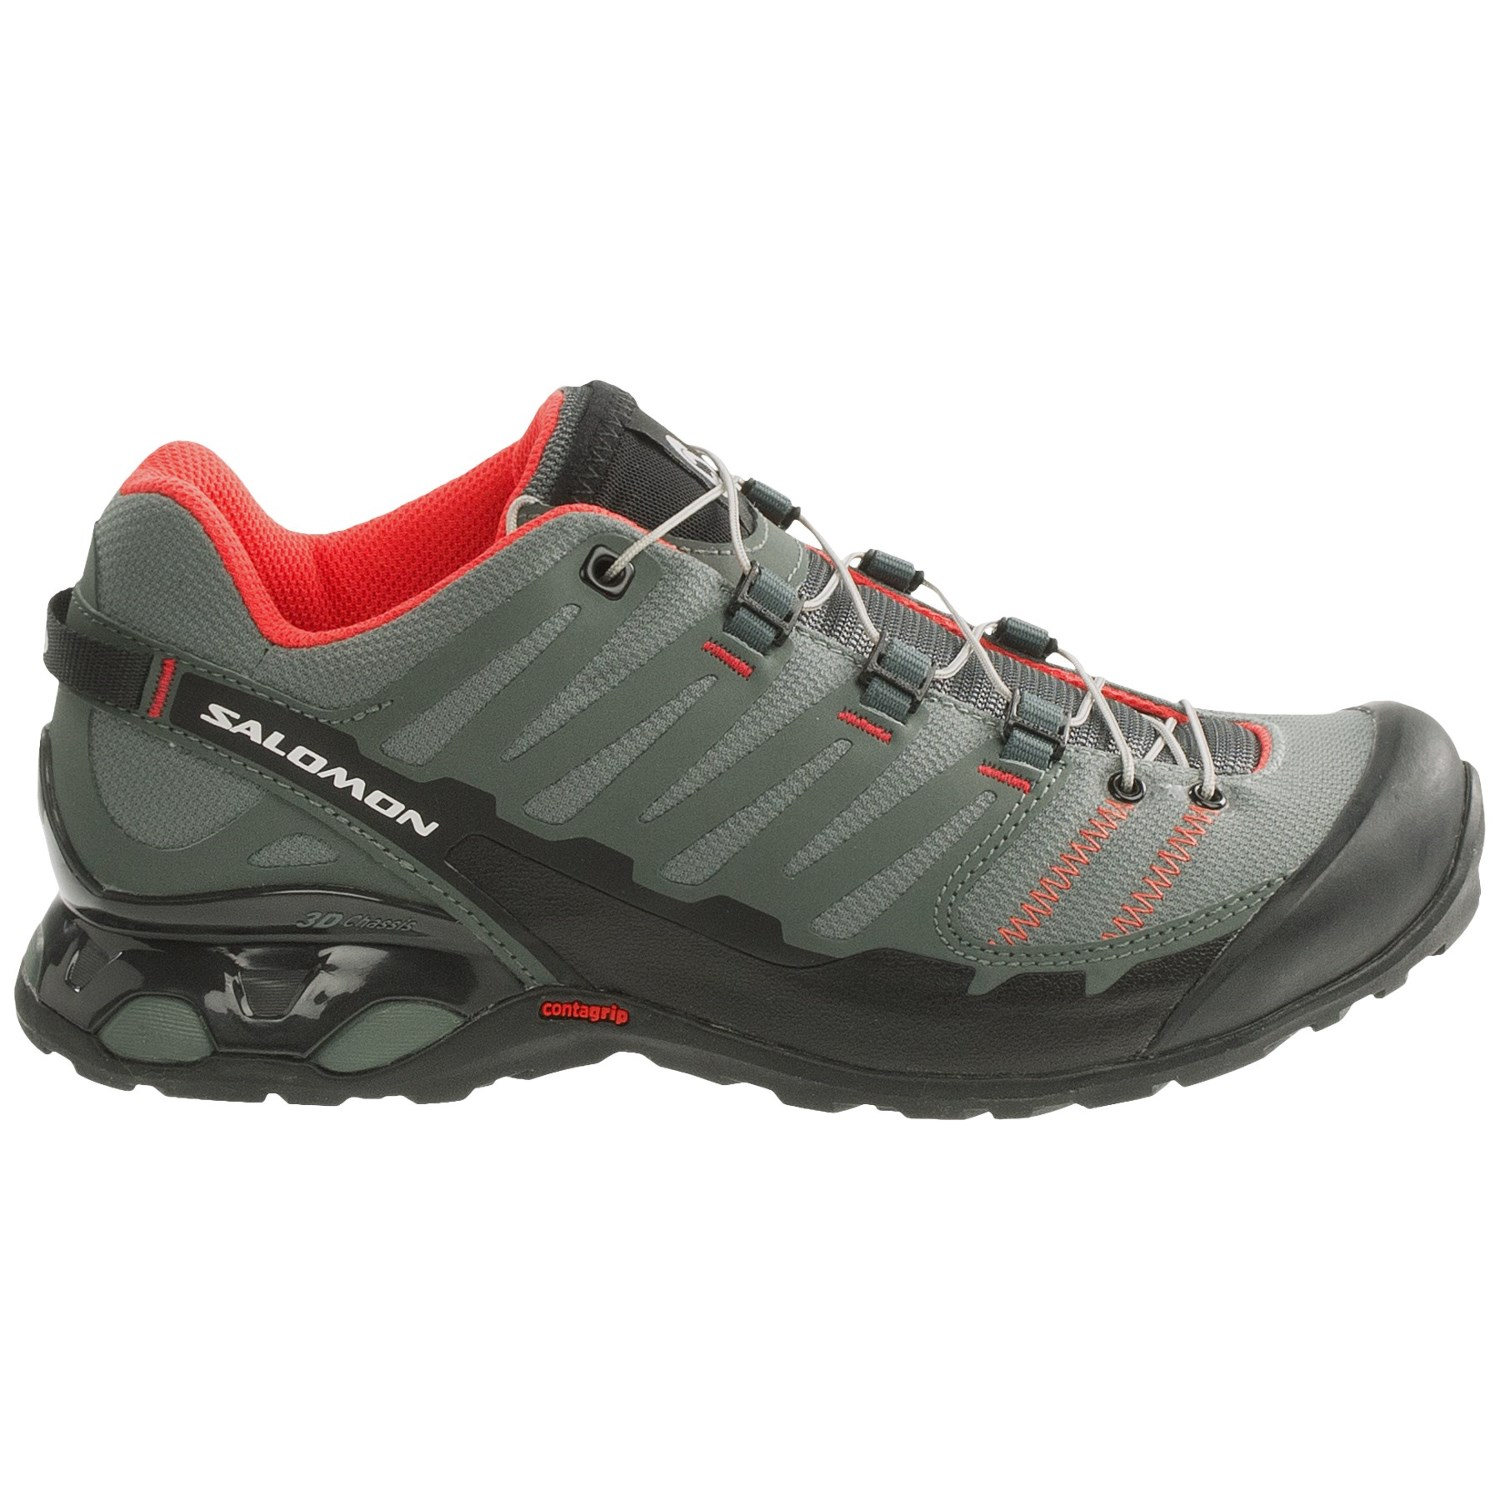 Salomon Shoe Sizing Trail Shoes